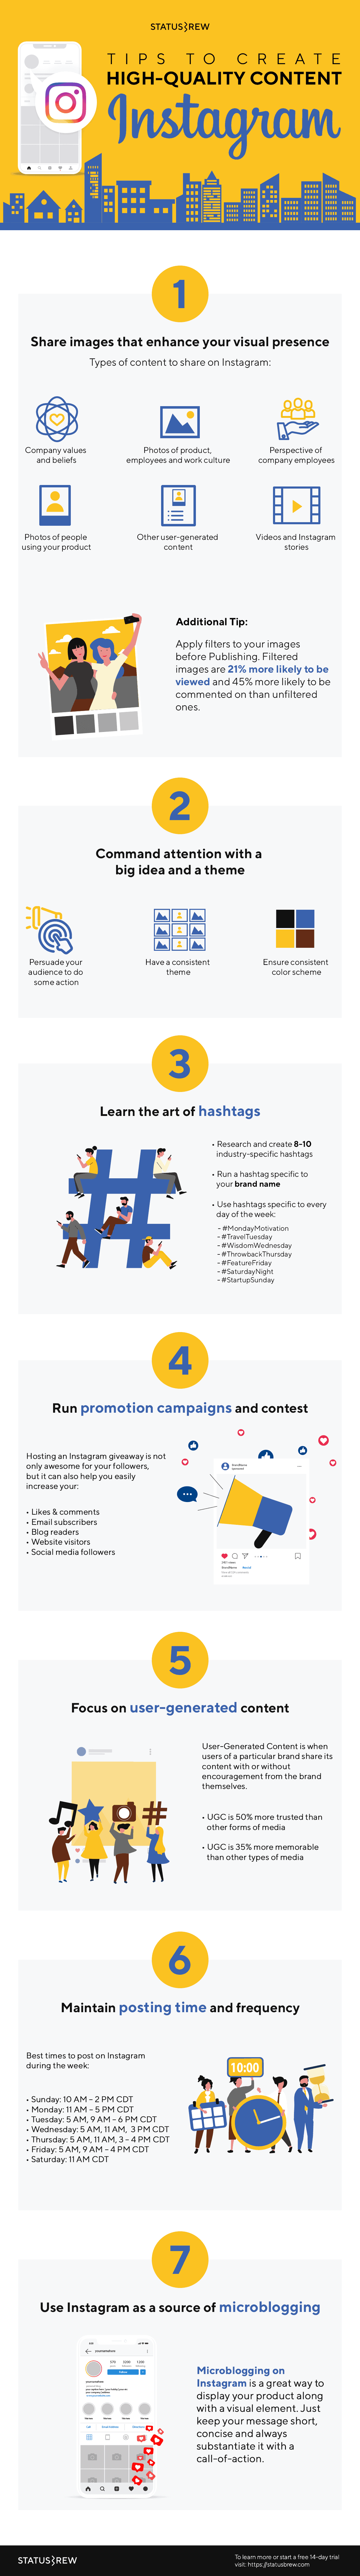 For more tips and tricks on getting your Instagram content strategy up and running, check out this great infographic!